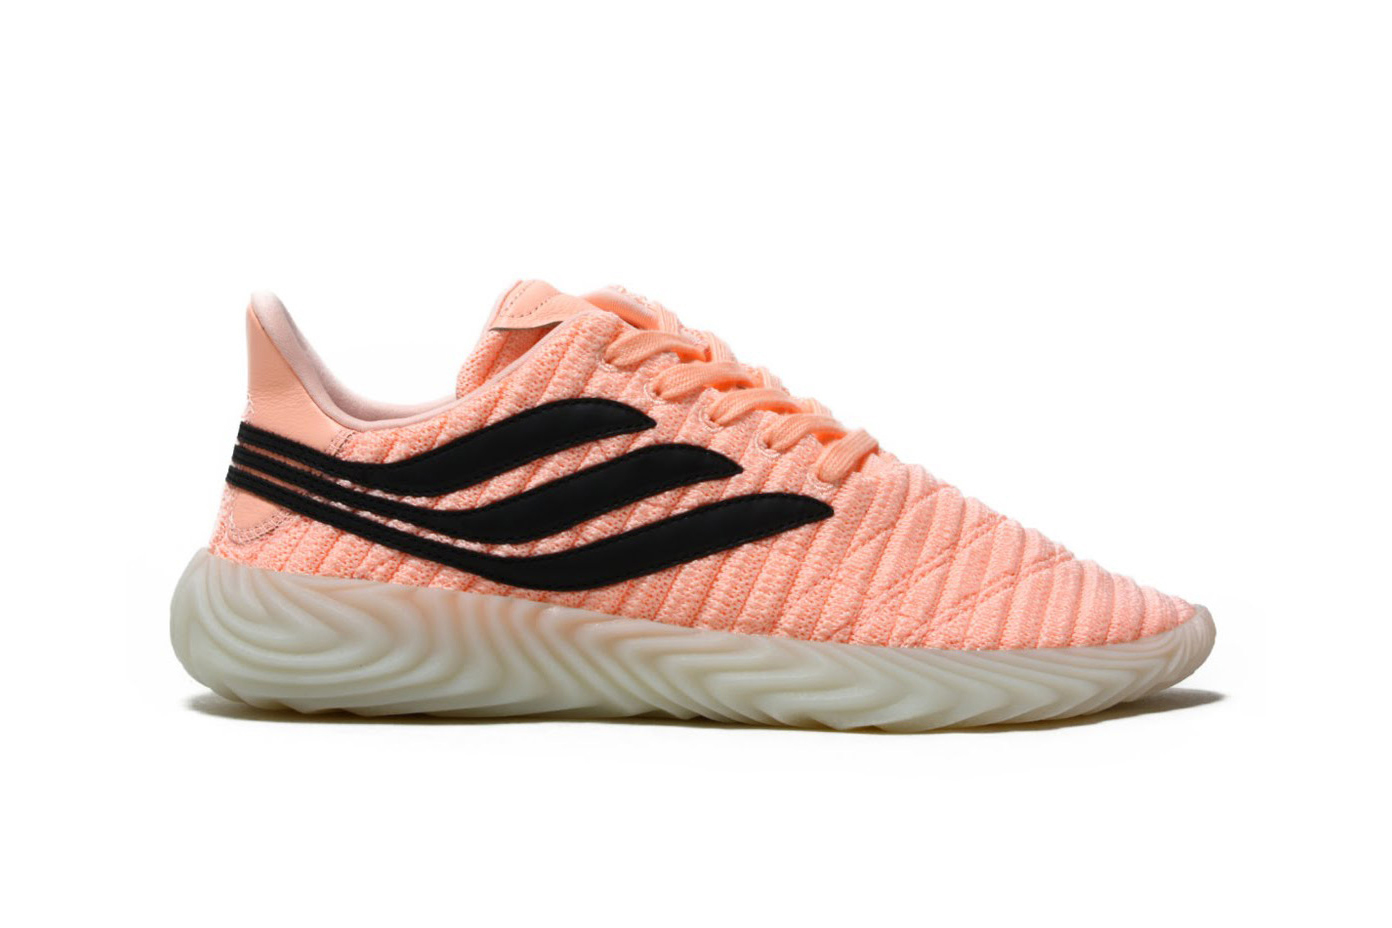 adidas Sobakov Clear Orange release info sneakers core black Crystal White soccer